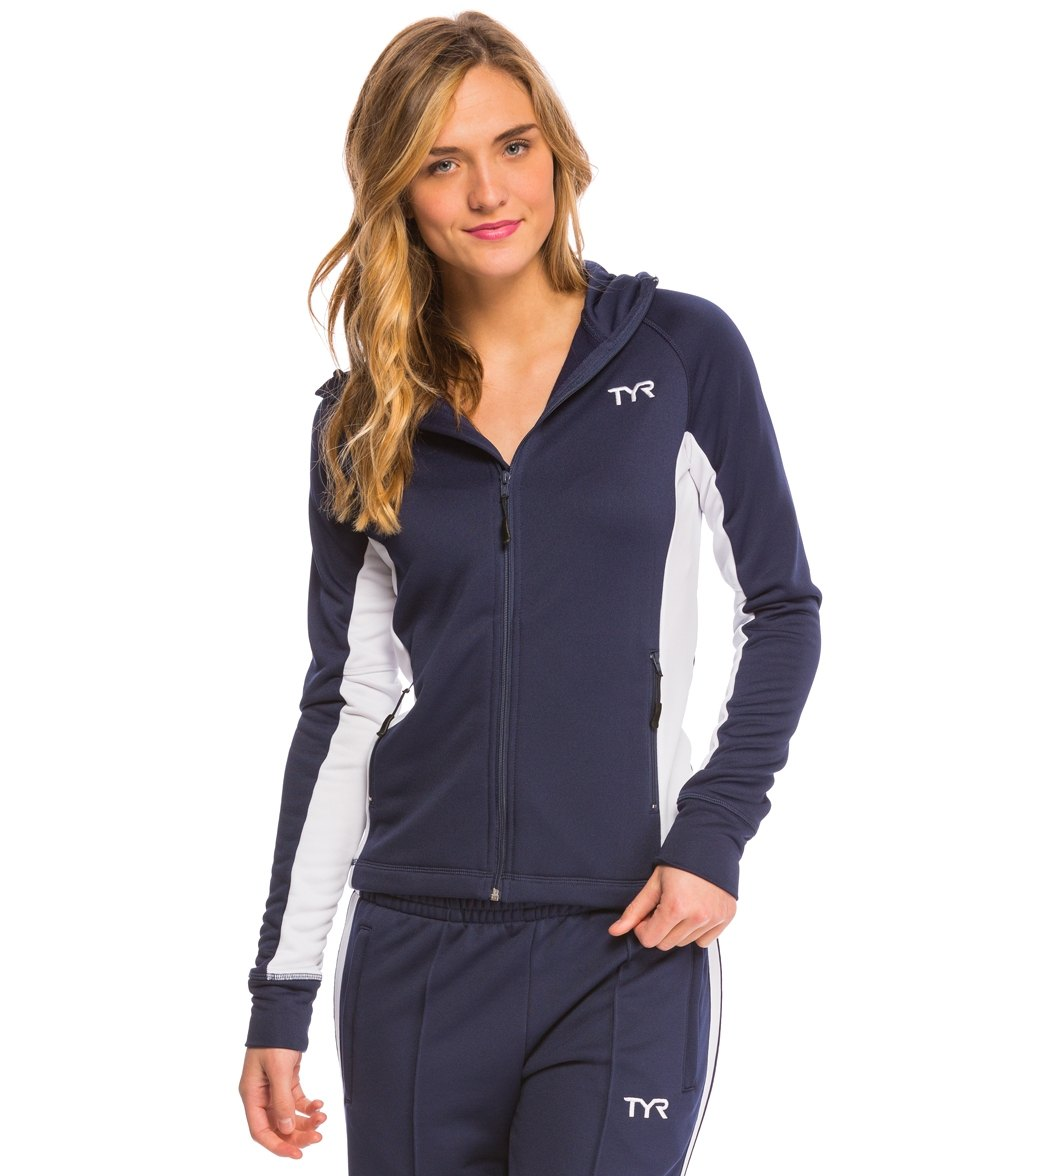 Tyr Alliance Victory Women S Warm Up Jacket At Swimoutlet Com Free